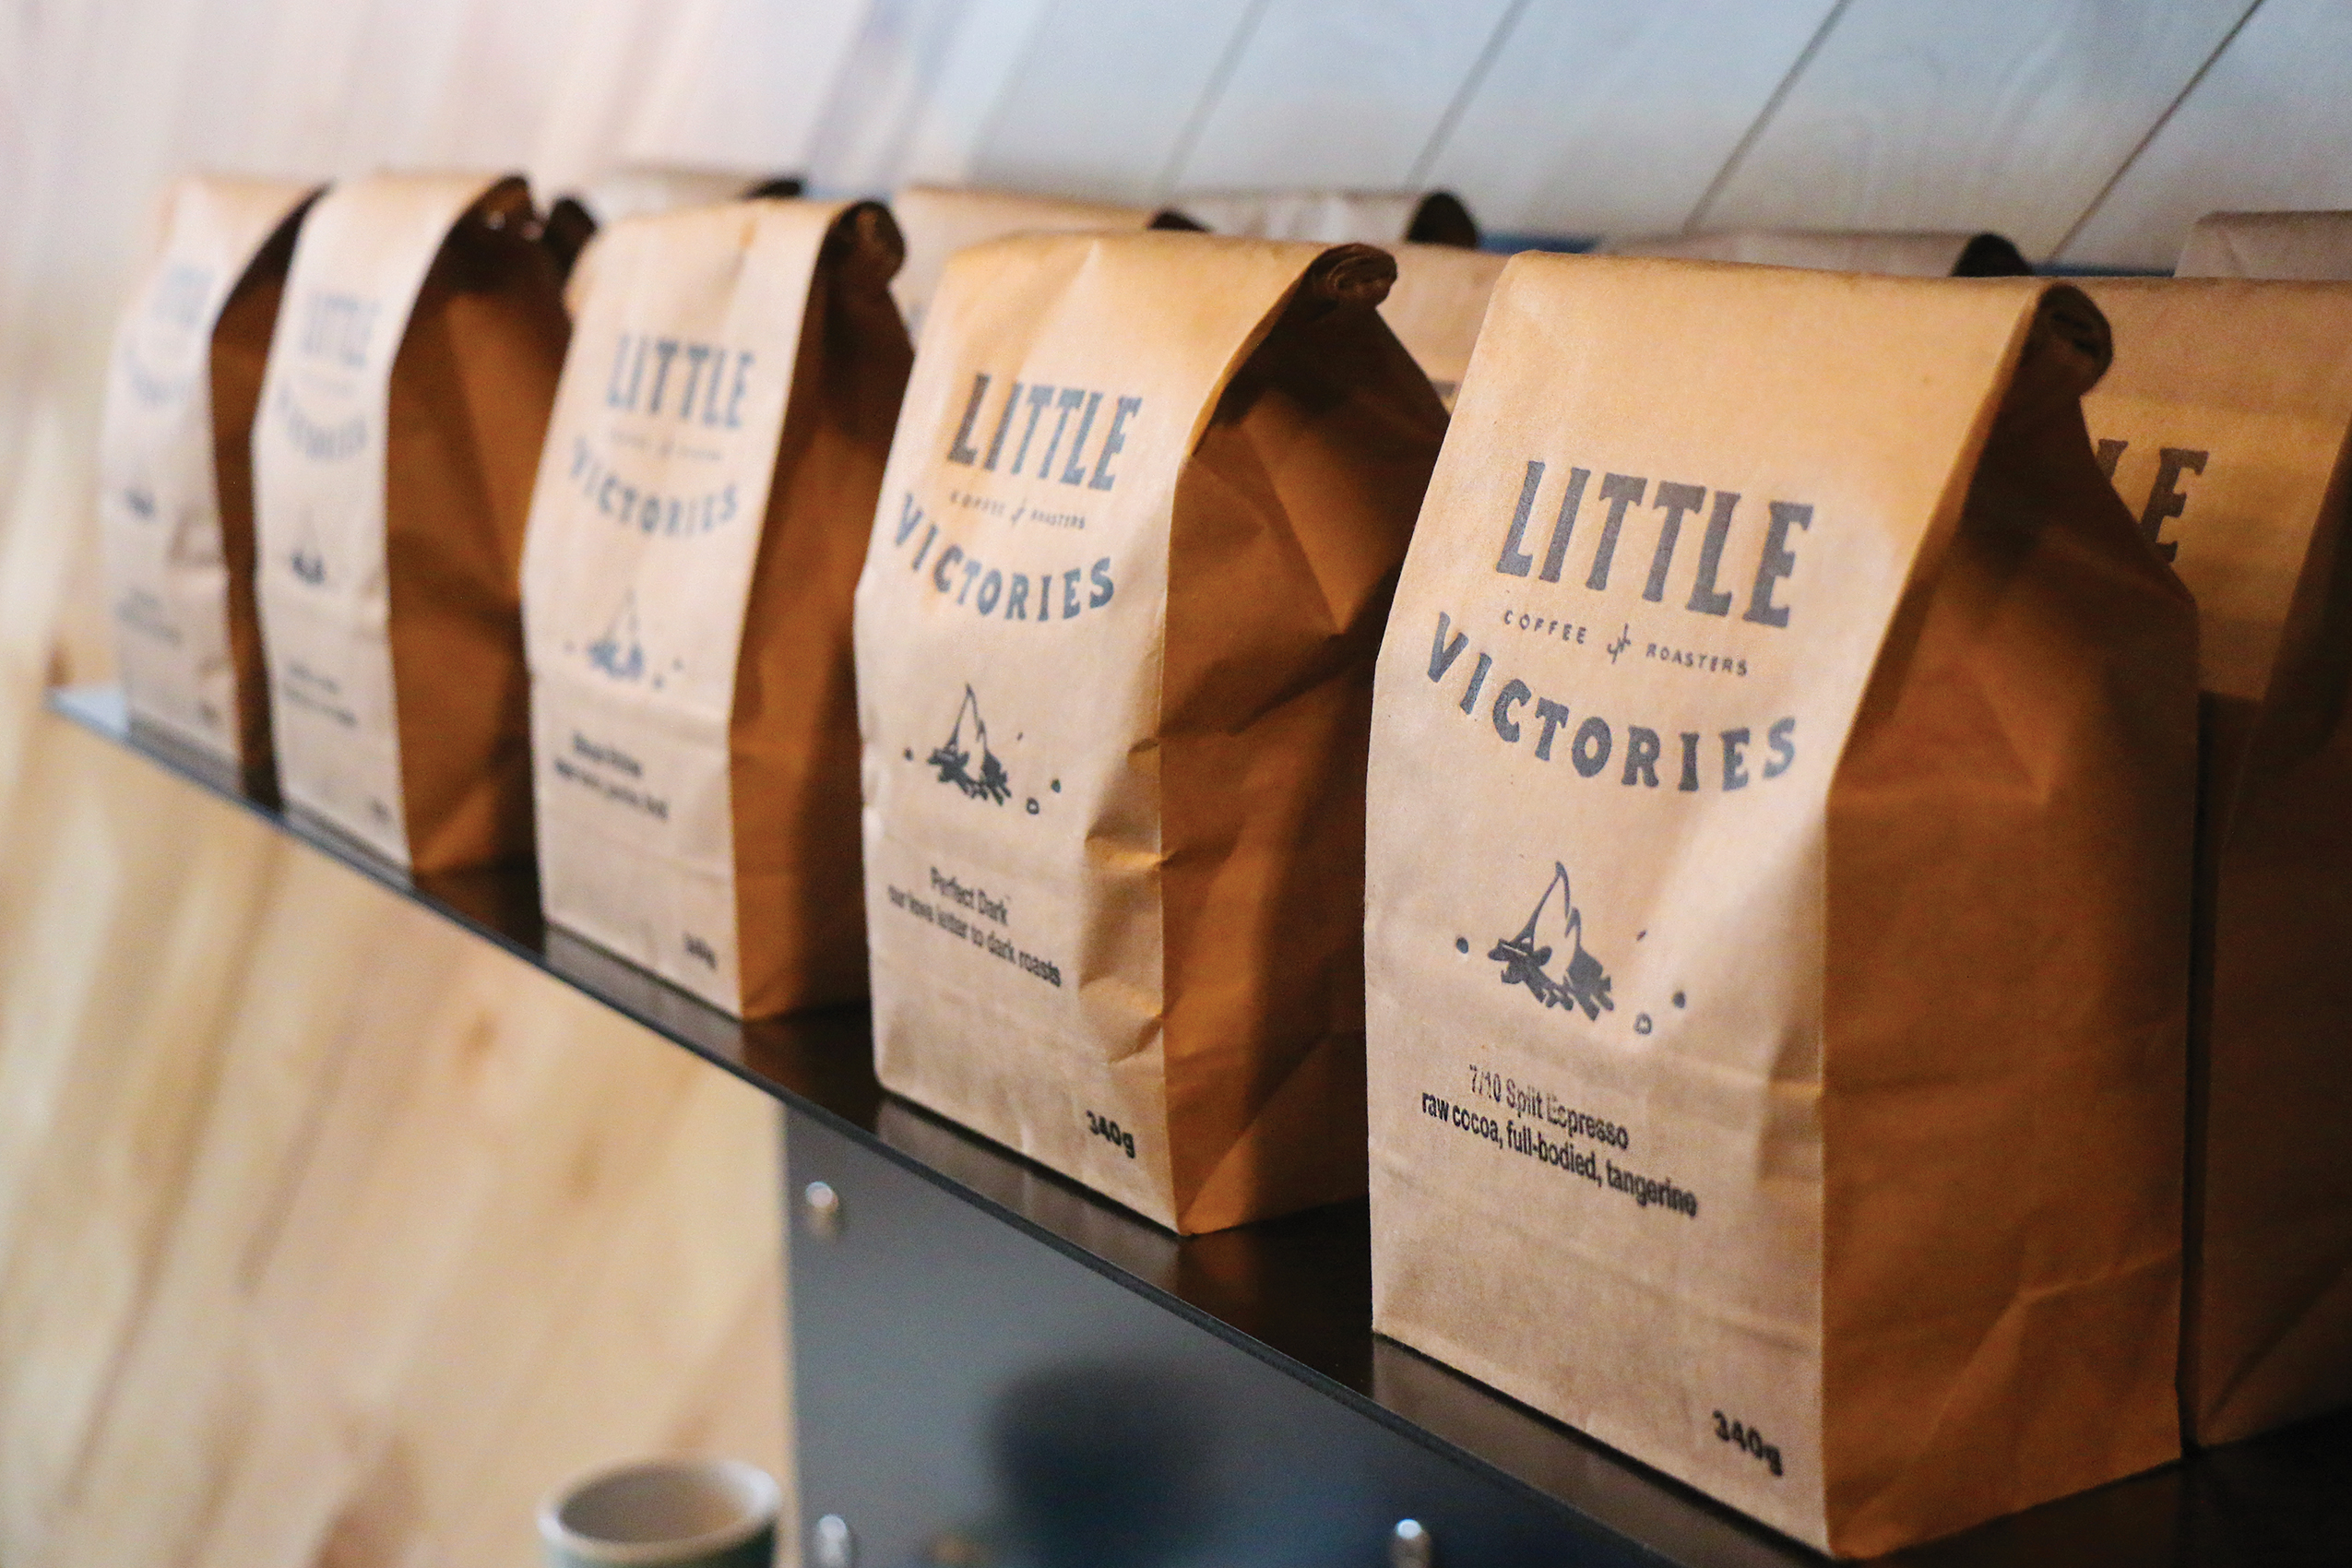 WEB_A&C_Food_Review_Little_victories_cred_Marta_Kierkus